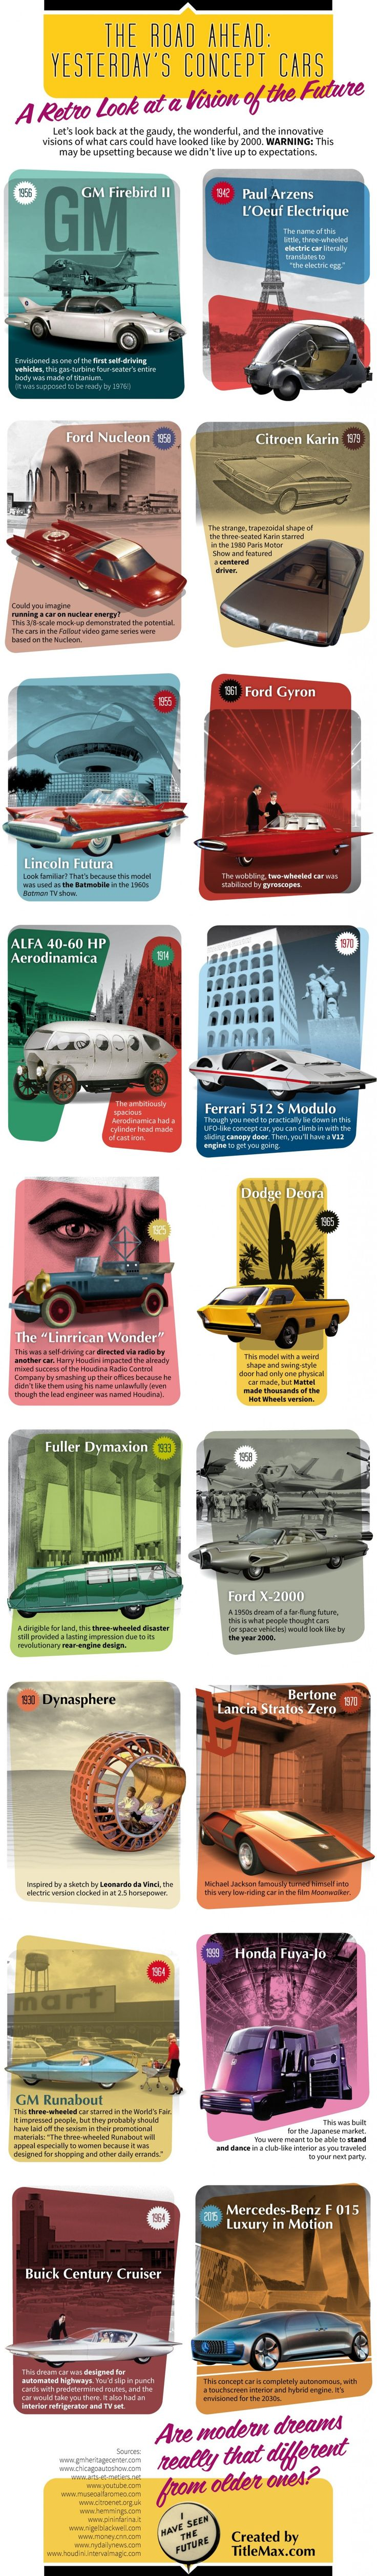 The road ahead yesterday s concept cars infographic